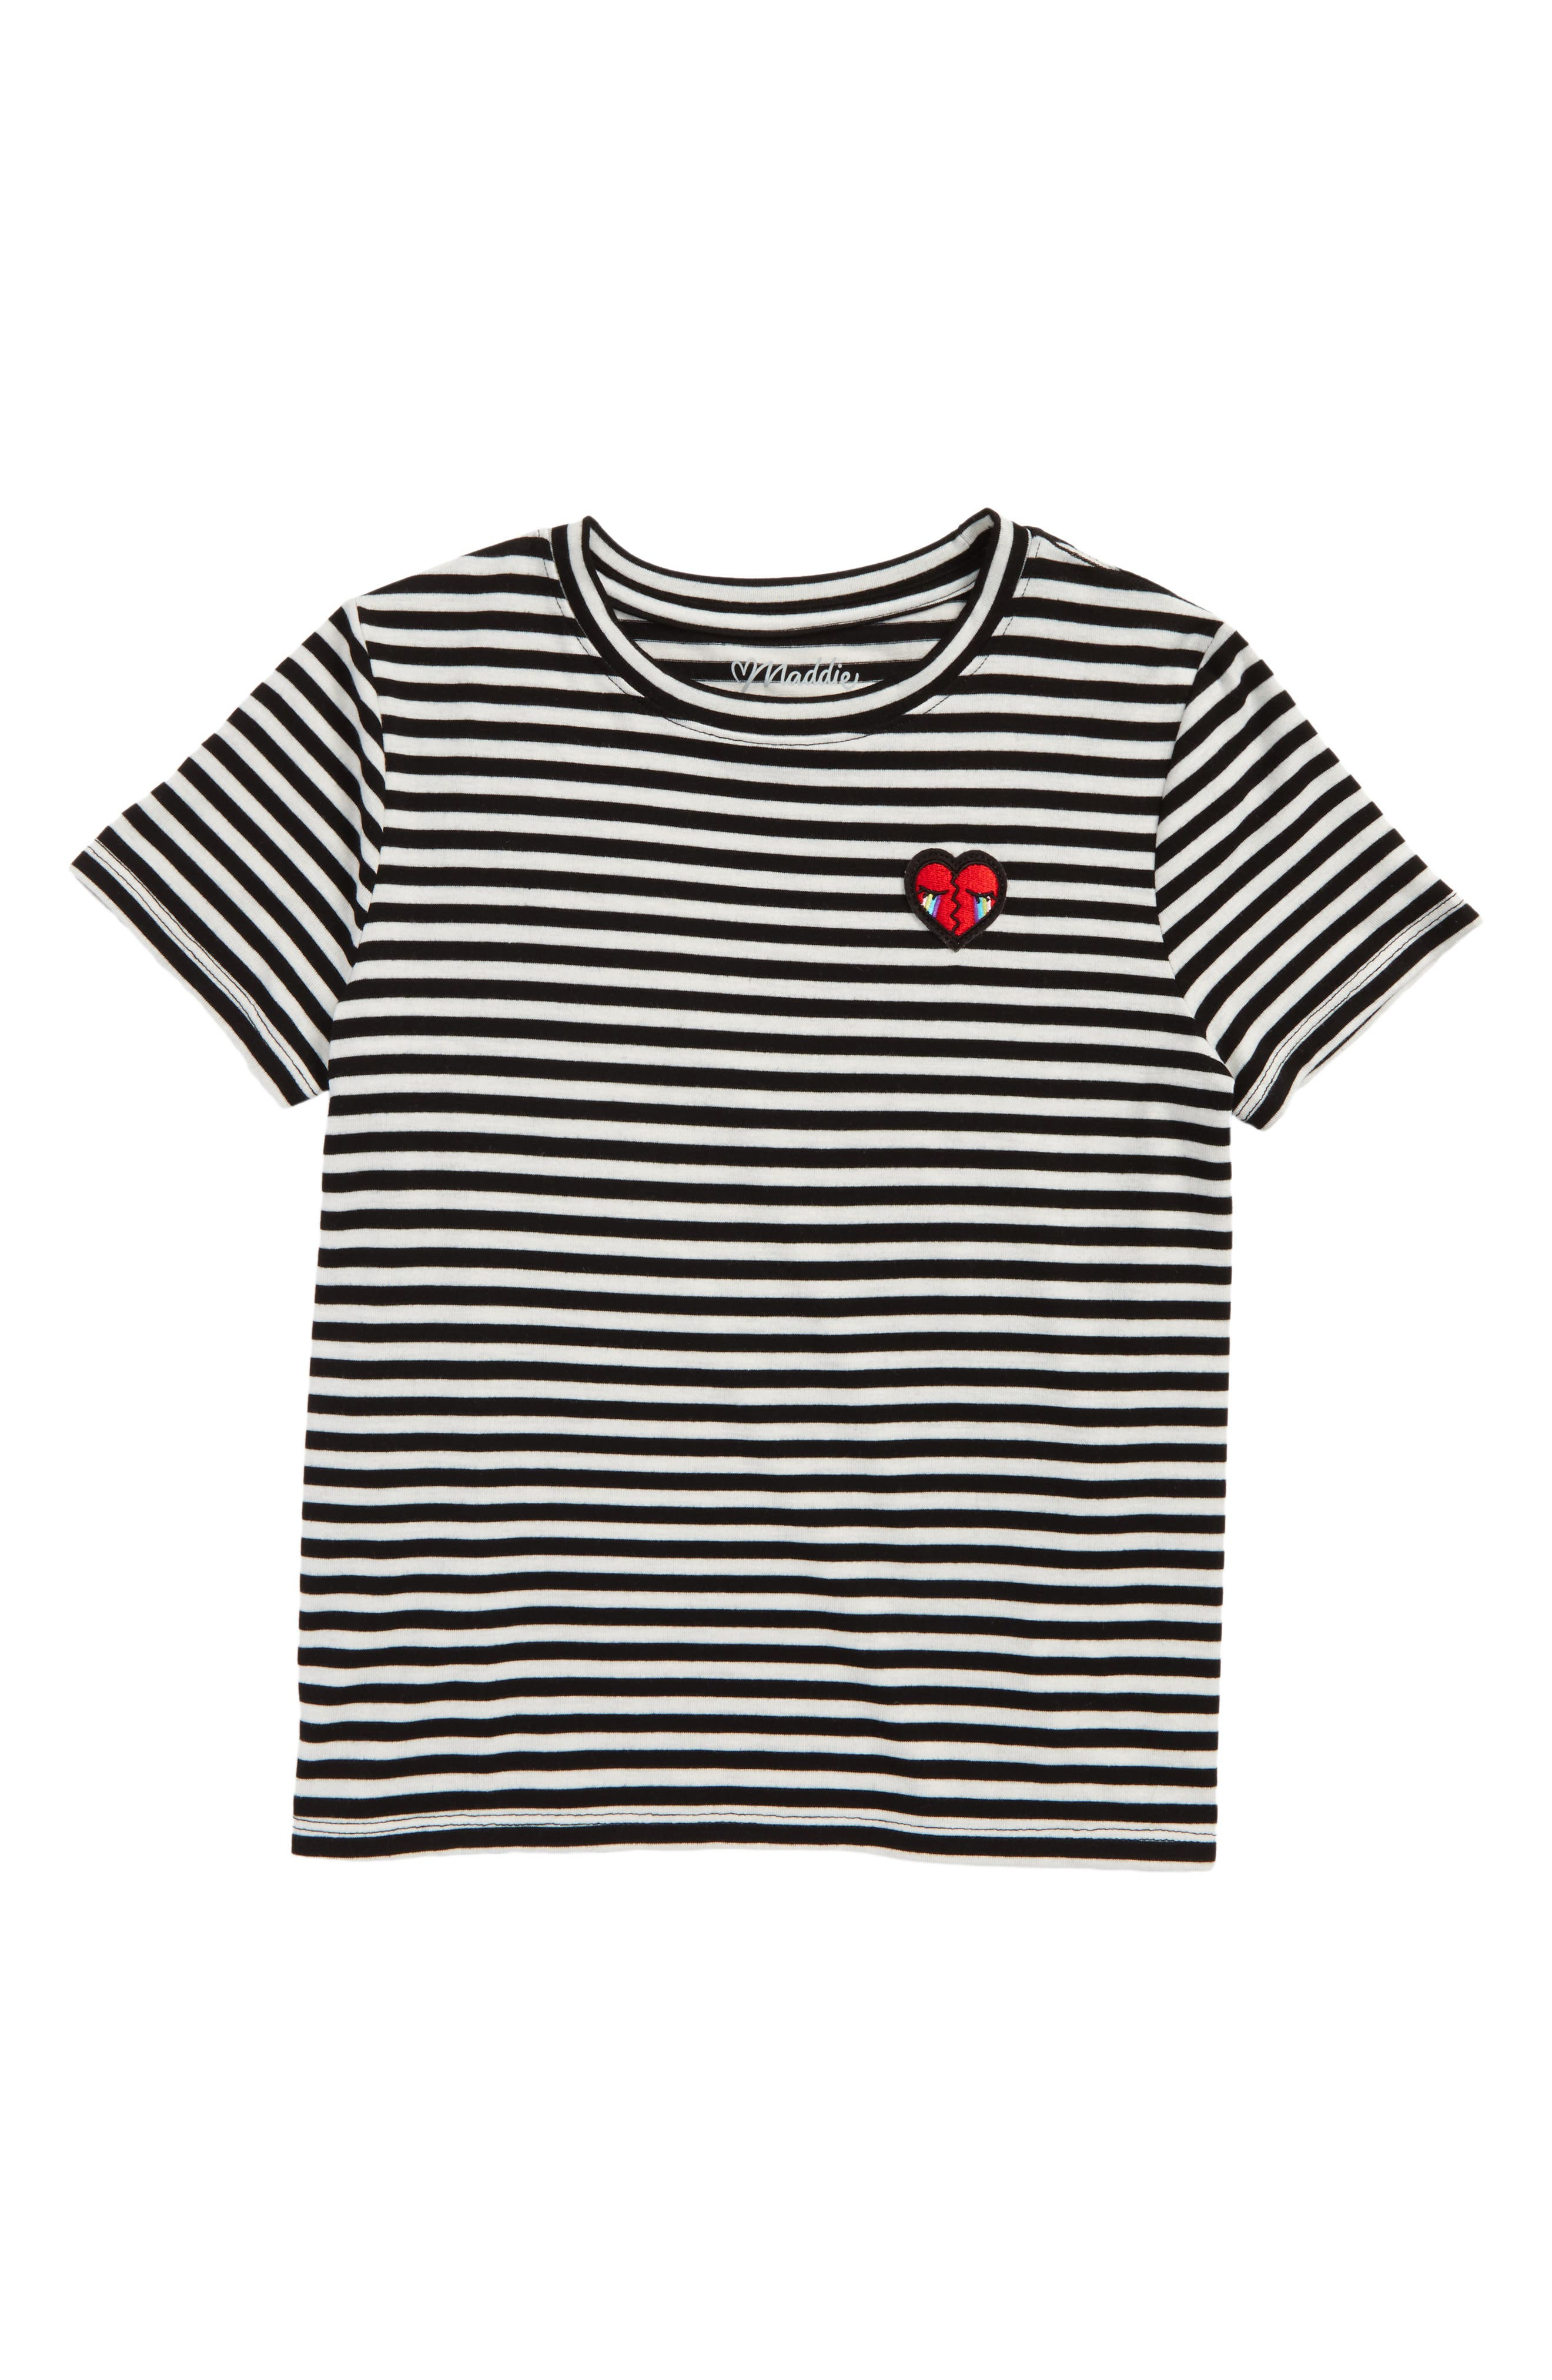 Alternate Image 1 Selected - Maddie Heart Patch Stripe Tee (Big Girls)